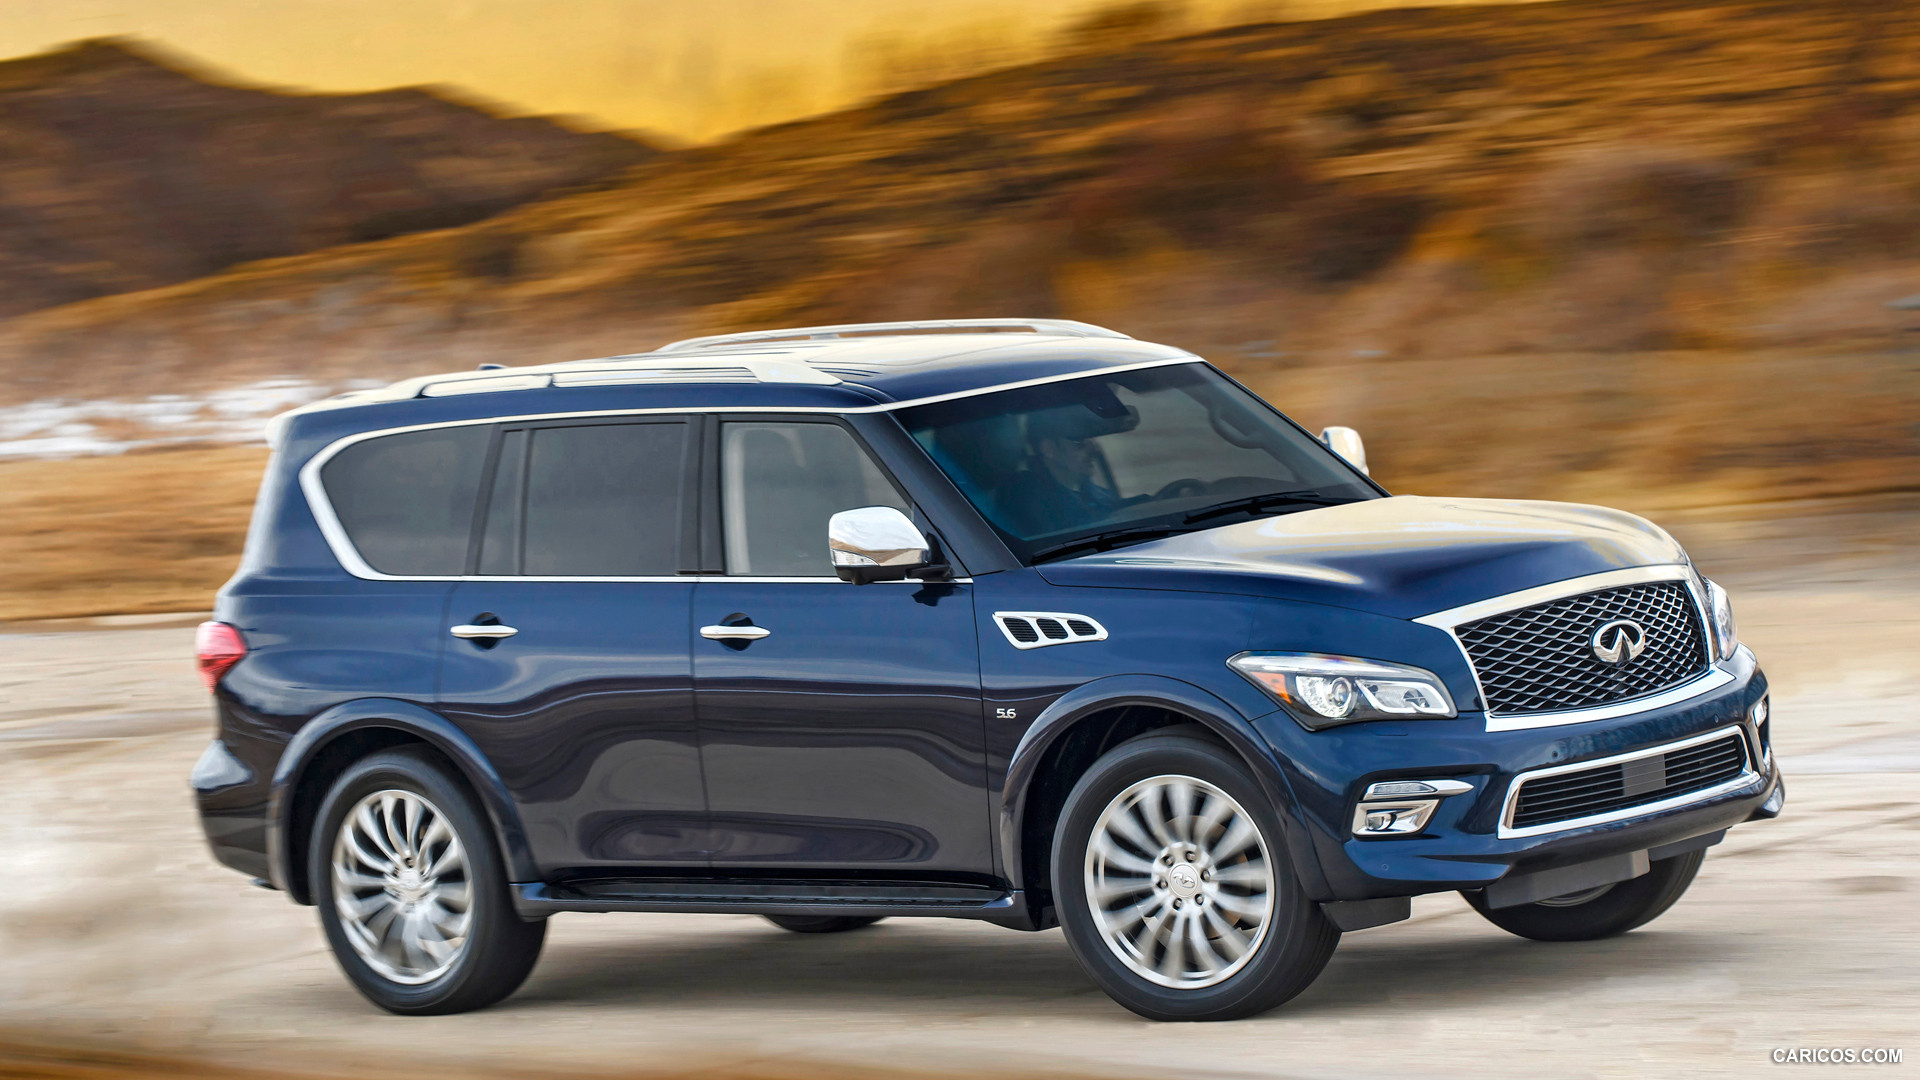 1920x1080 - Infiniti QX80 Wallpapers 10